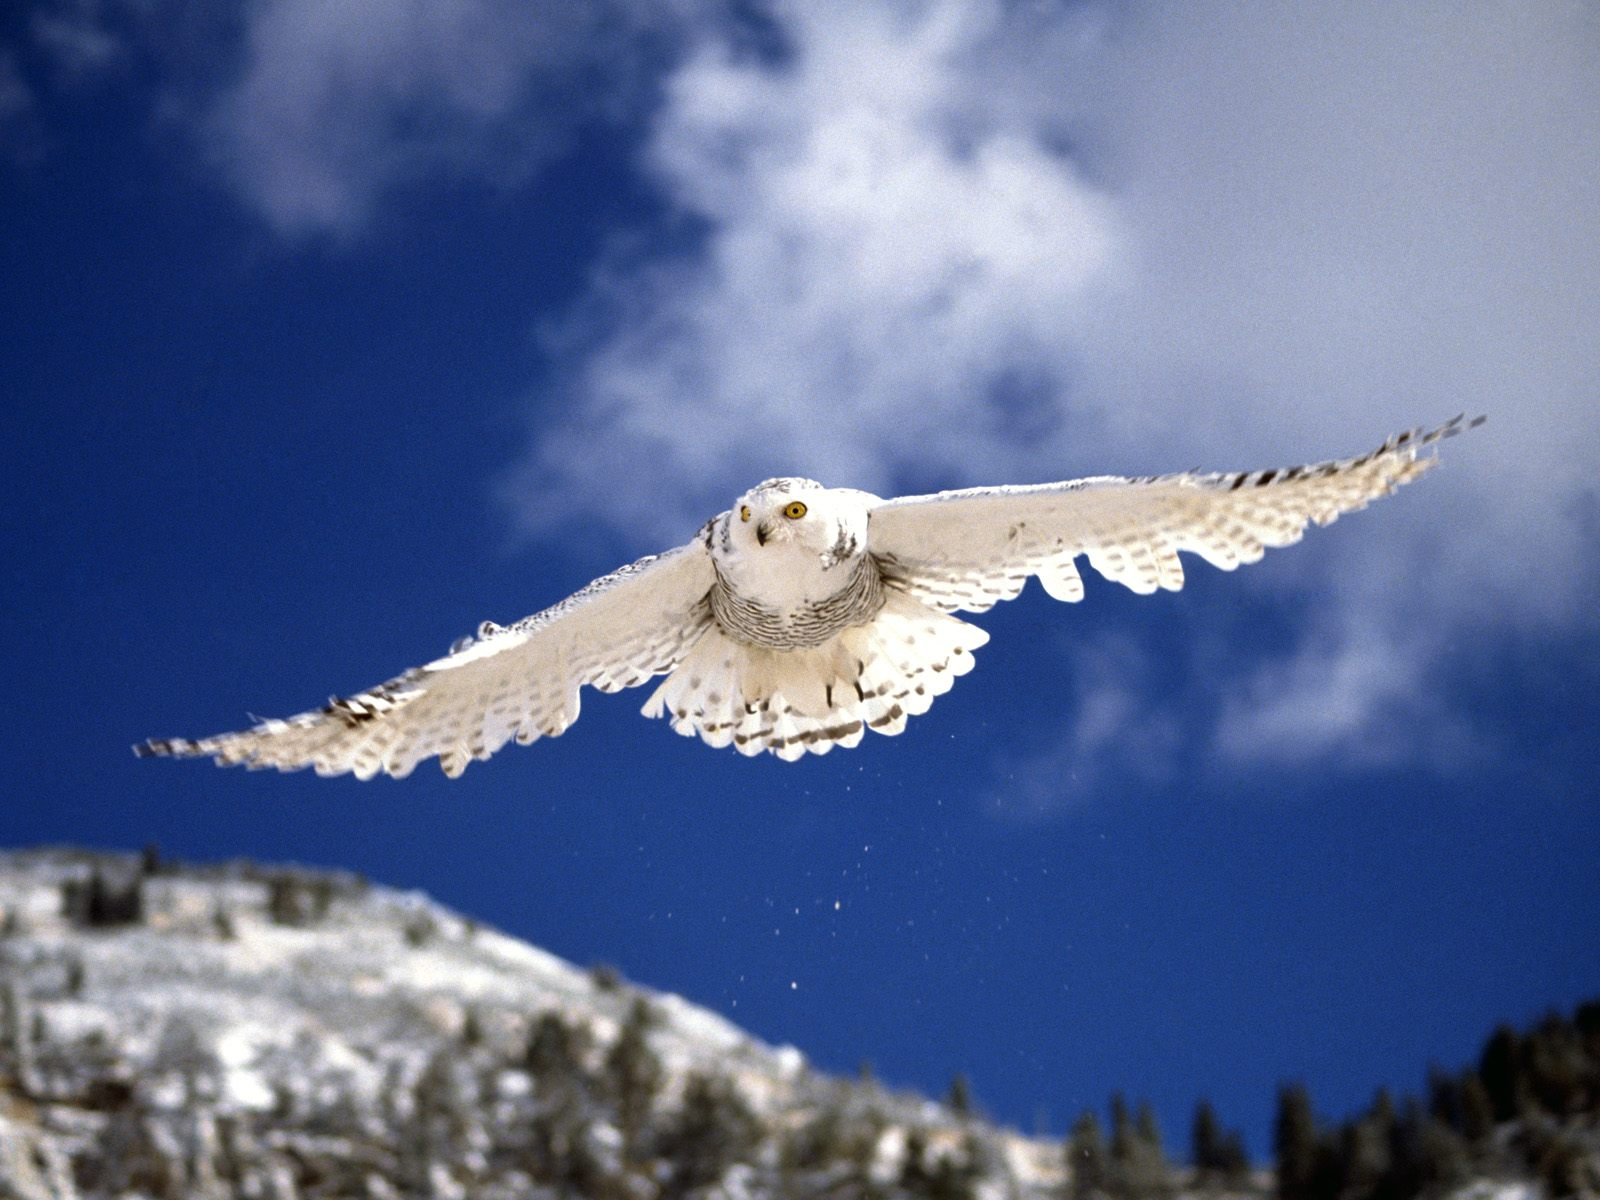 Snowy owl in flight at night - photo#9